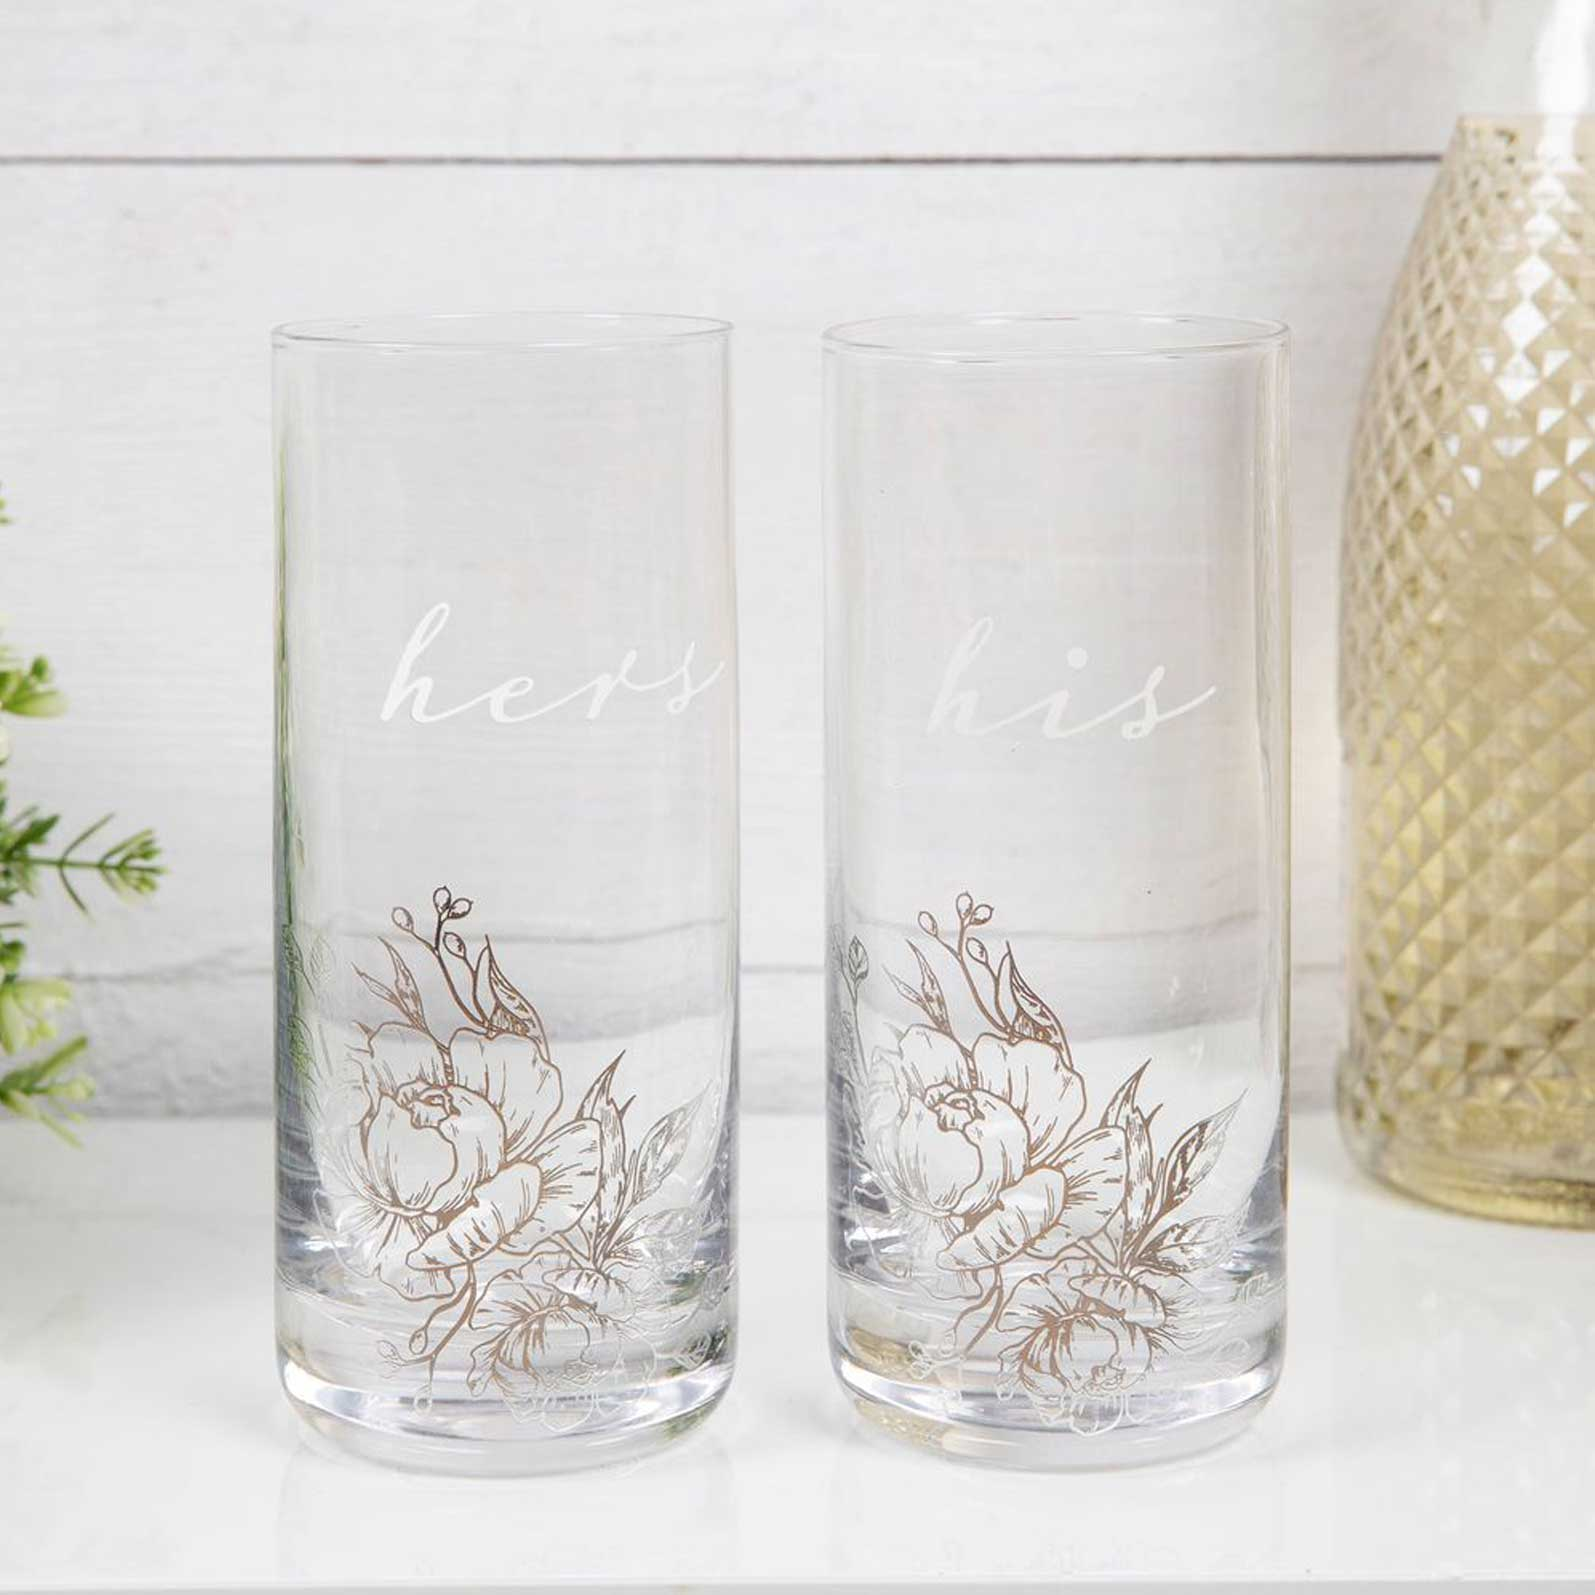 AMORE BY JULIANA LUXURY HIGHBALL GLASS SET - HIS & HERS AM157